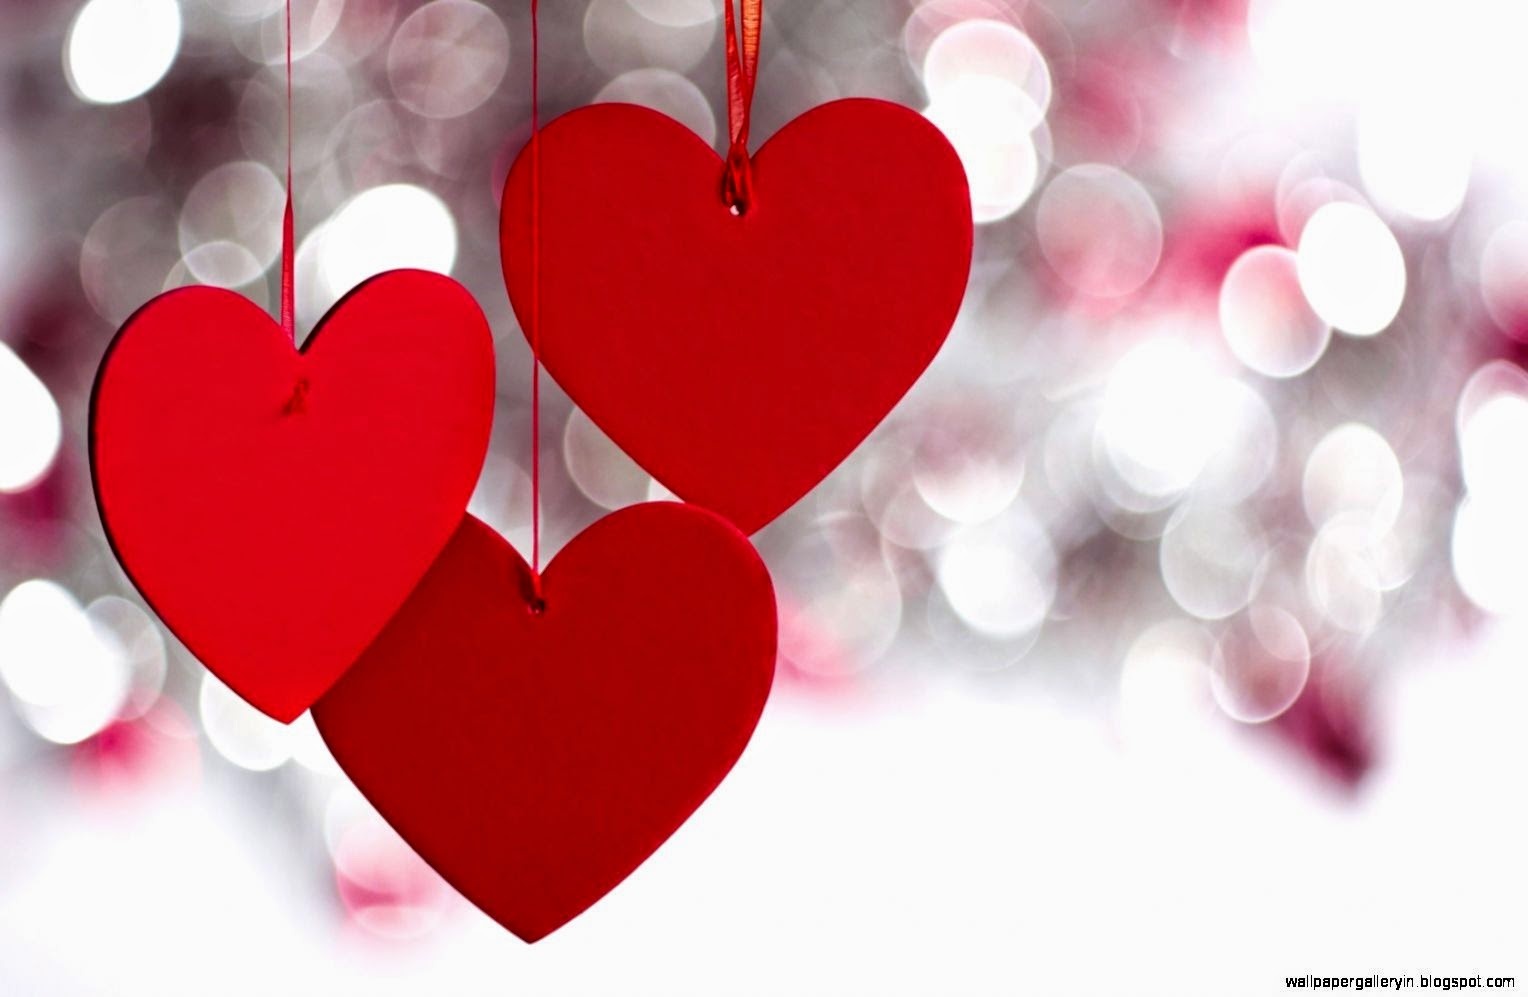 Cute Love Hearts Valentines Day Wallpaper | Wallpaper Gallery